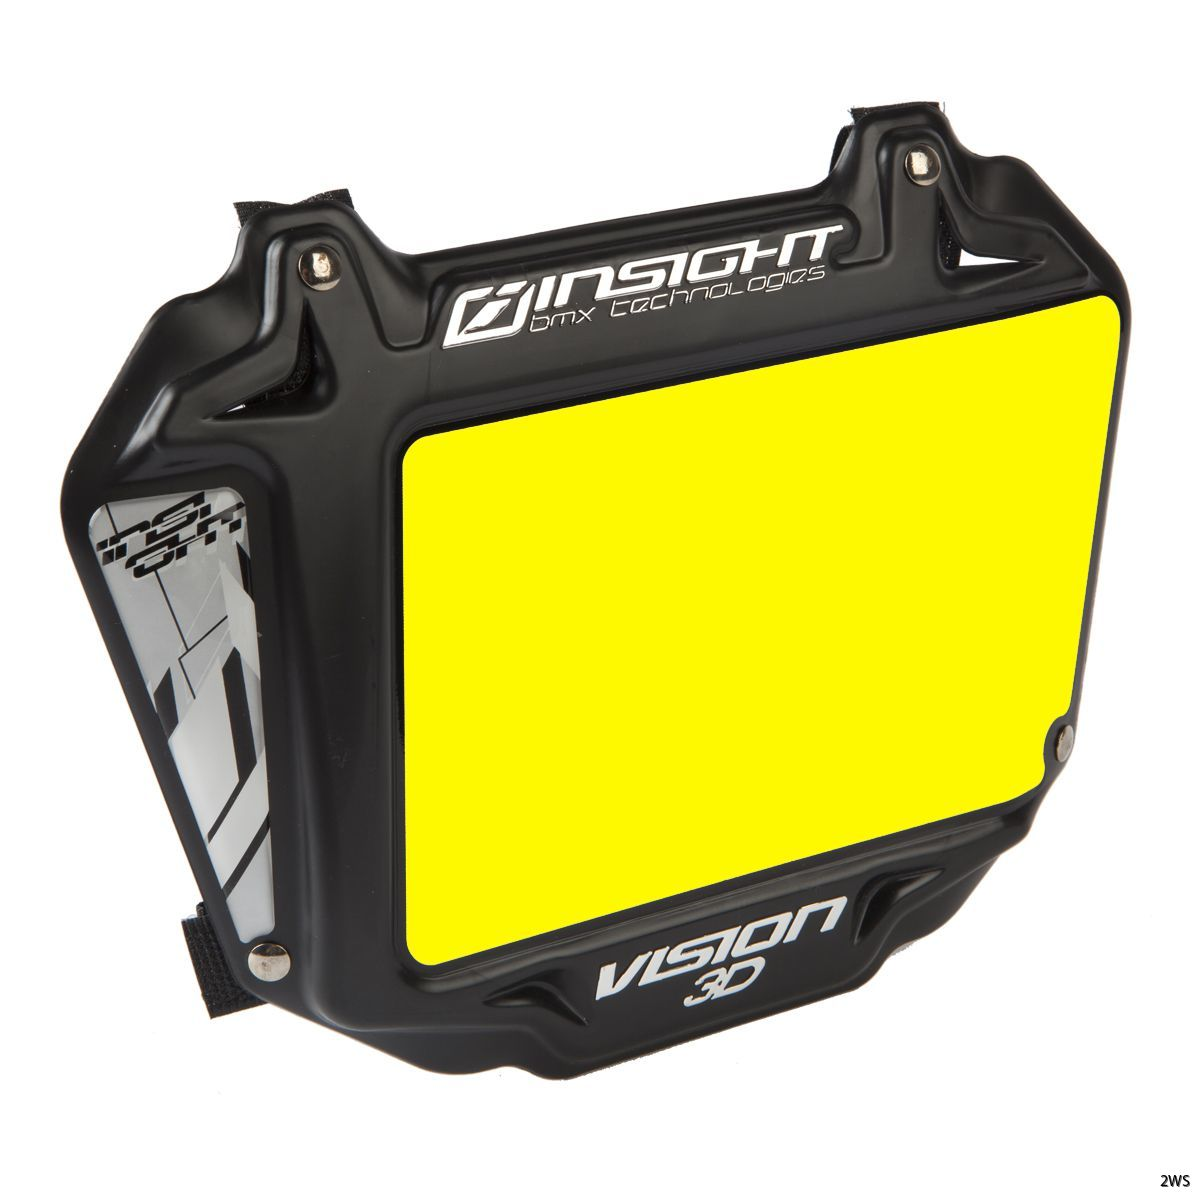 insight-number-plate-vision-3d-expert-yellow-bg